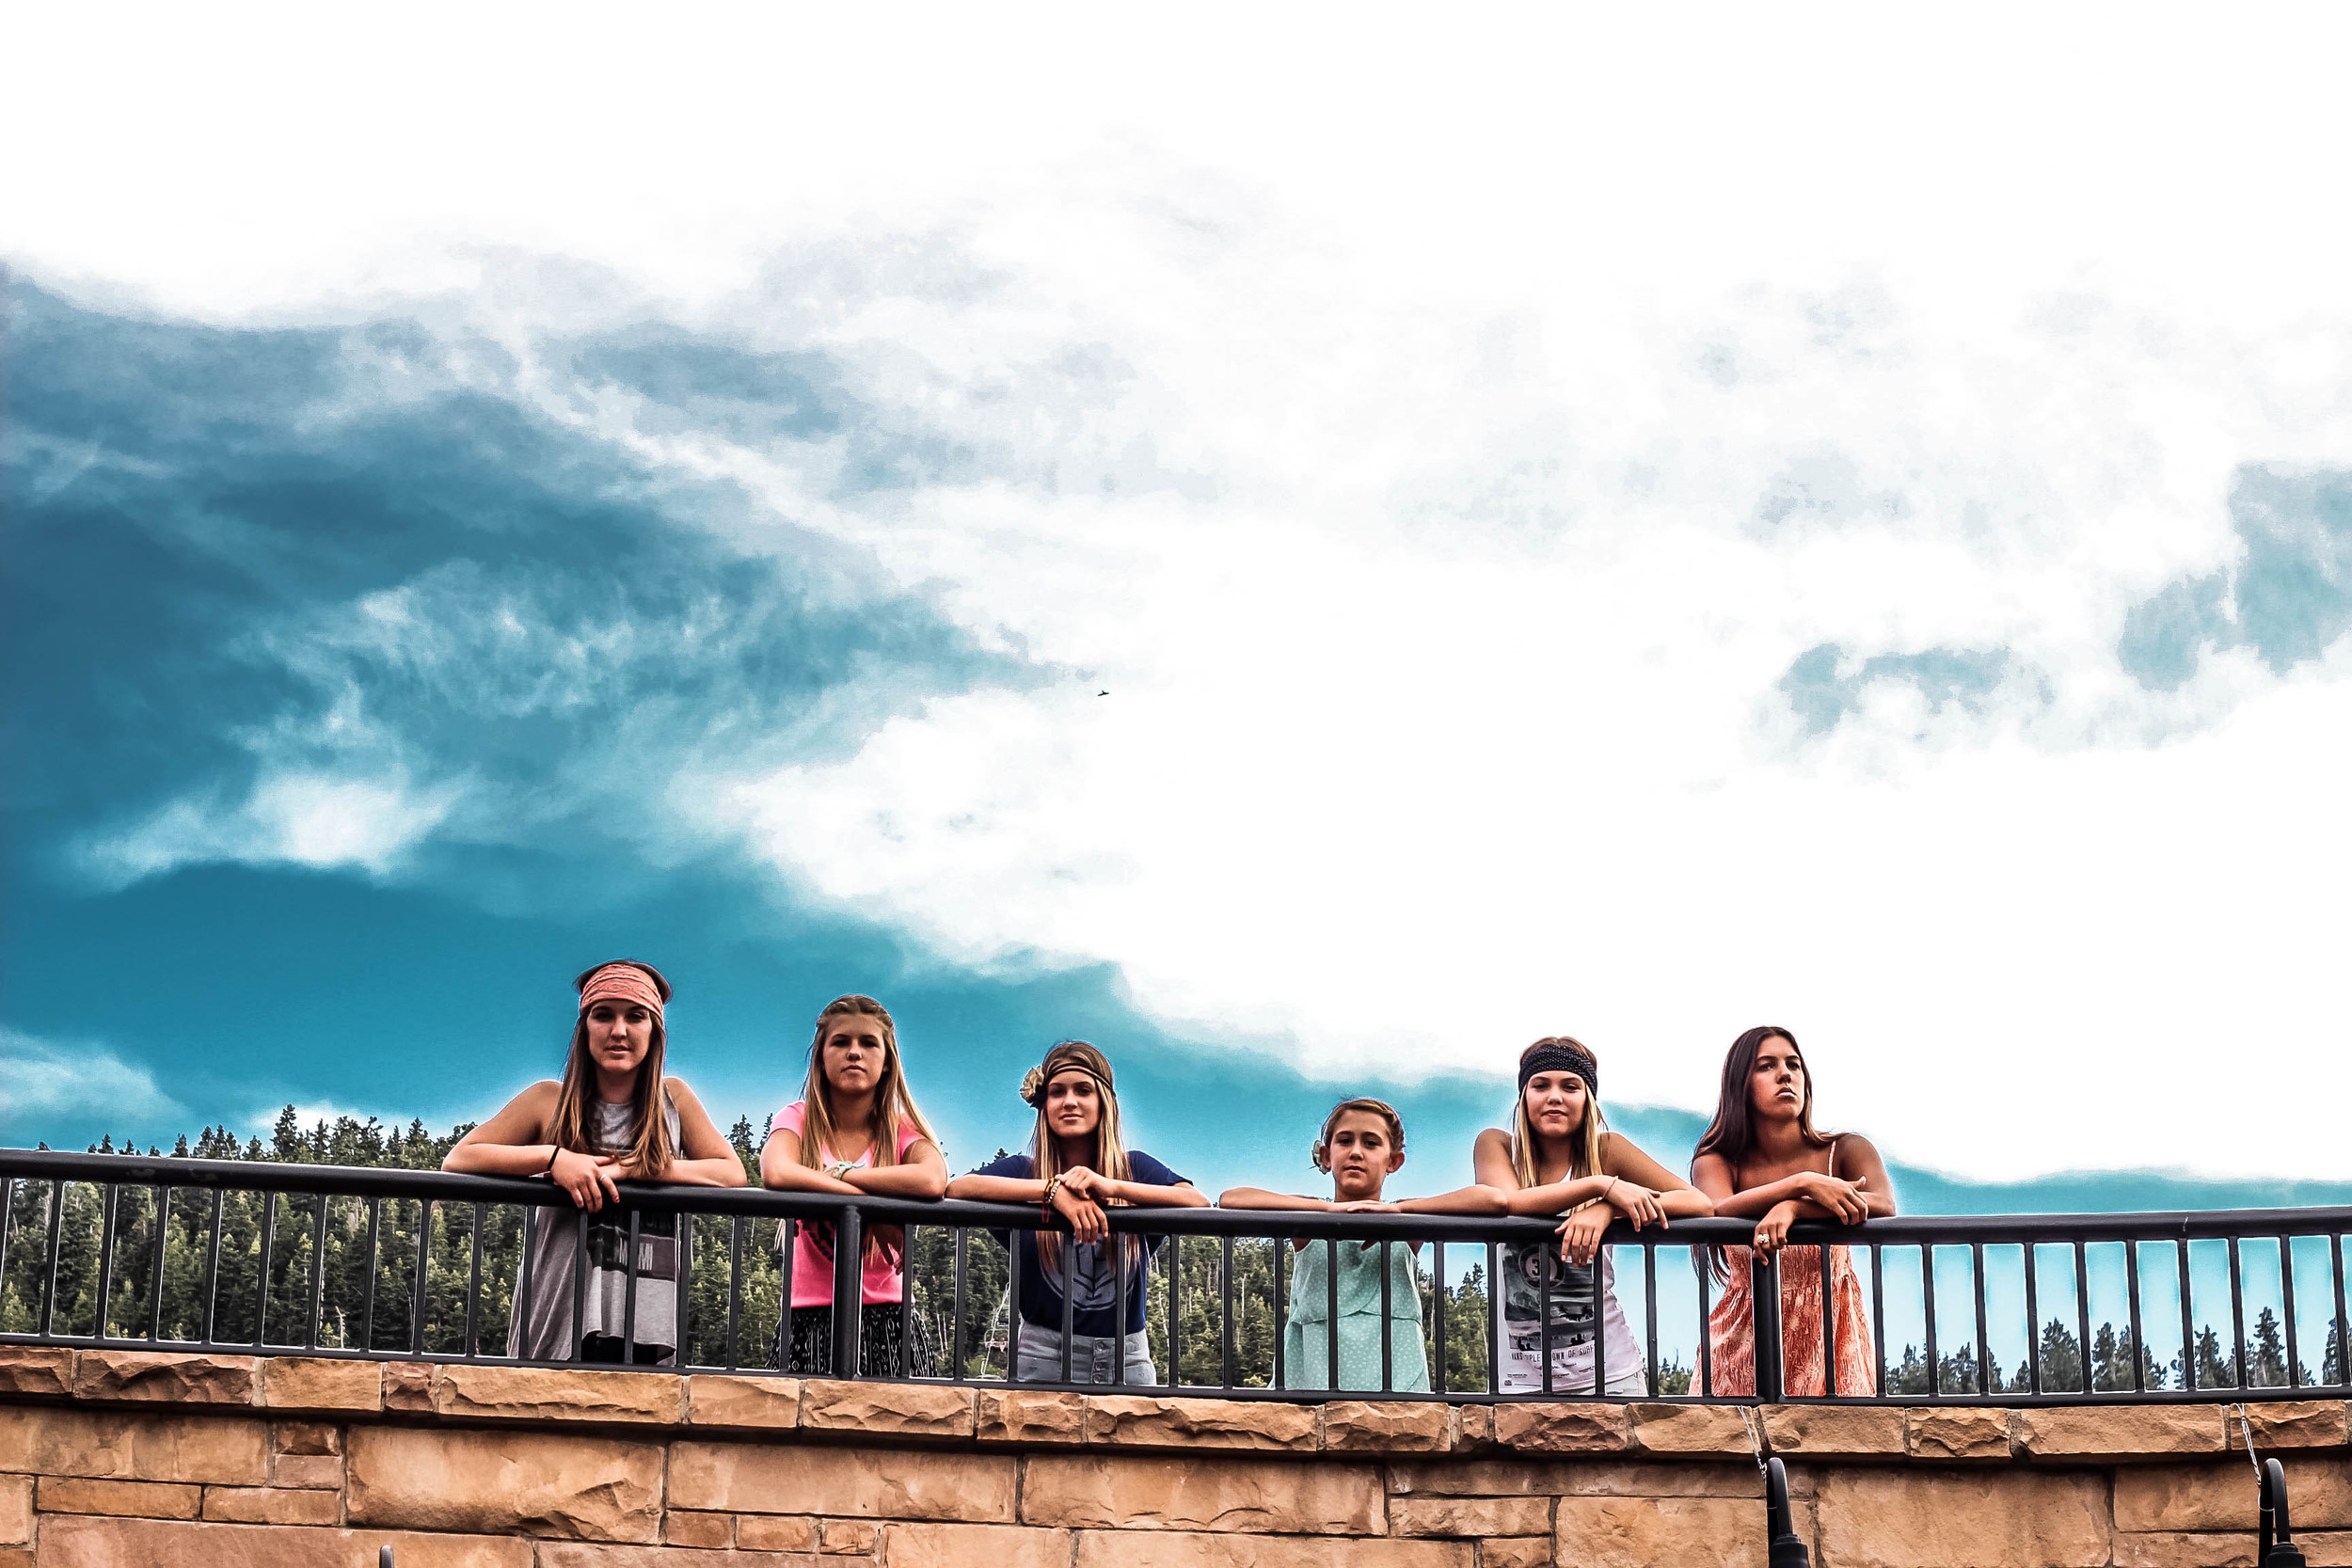 Cousins: edited using the JamesB 'Rome' preset- i'm not sure why they have the white outlines around them, i just love how this made the sky look